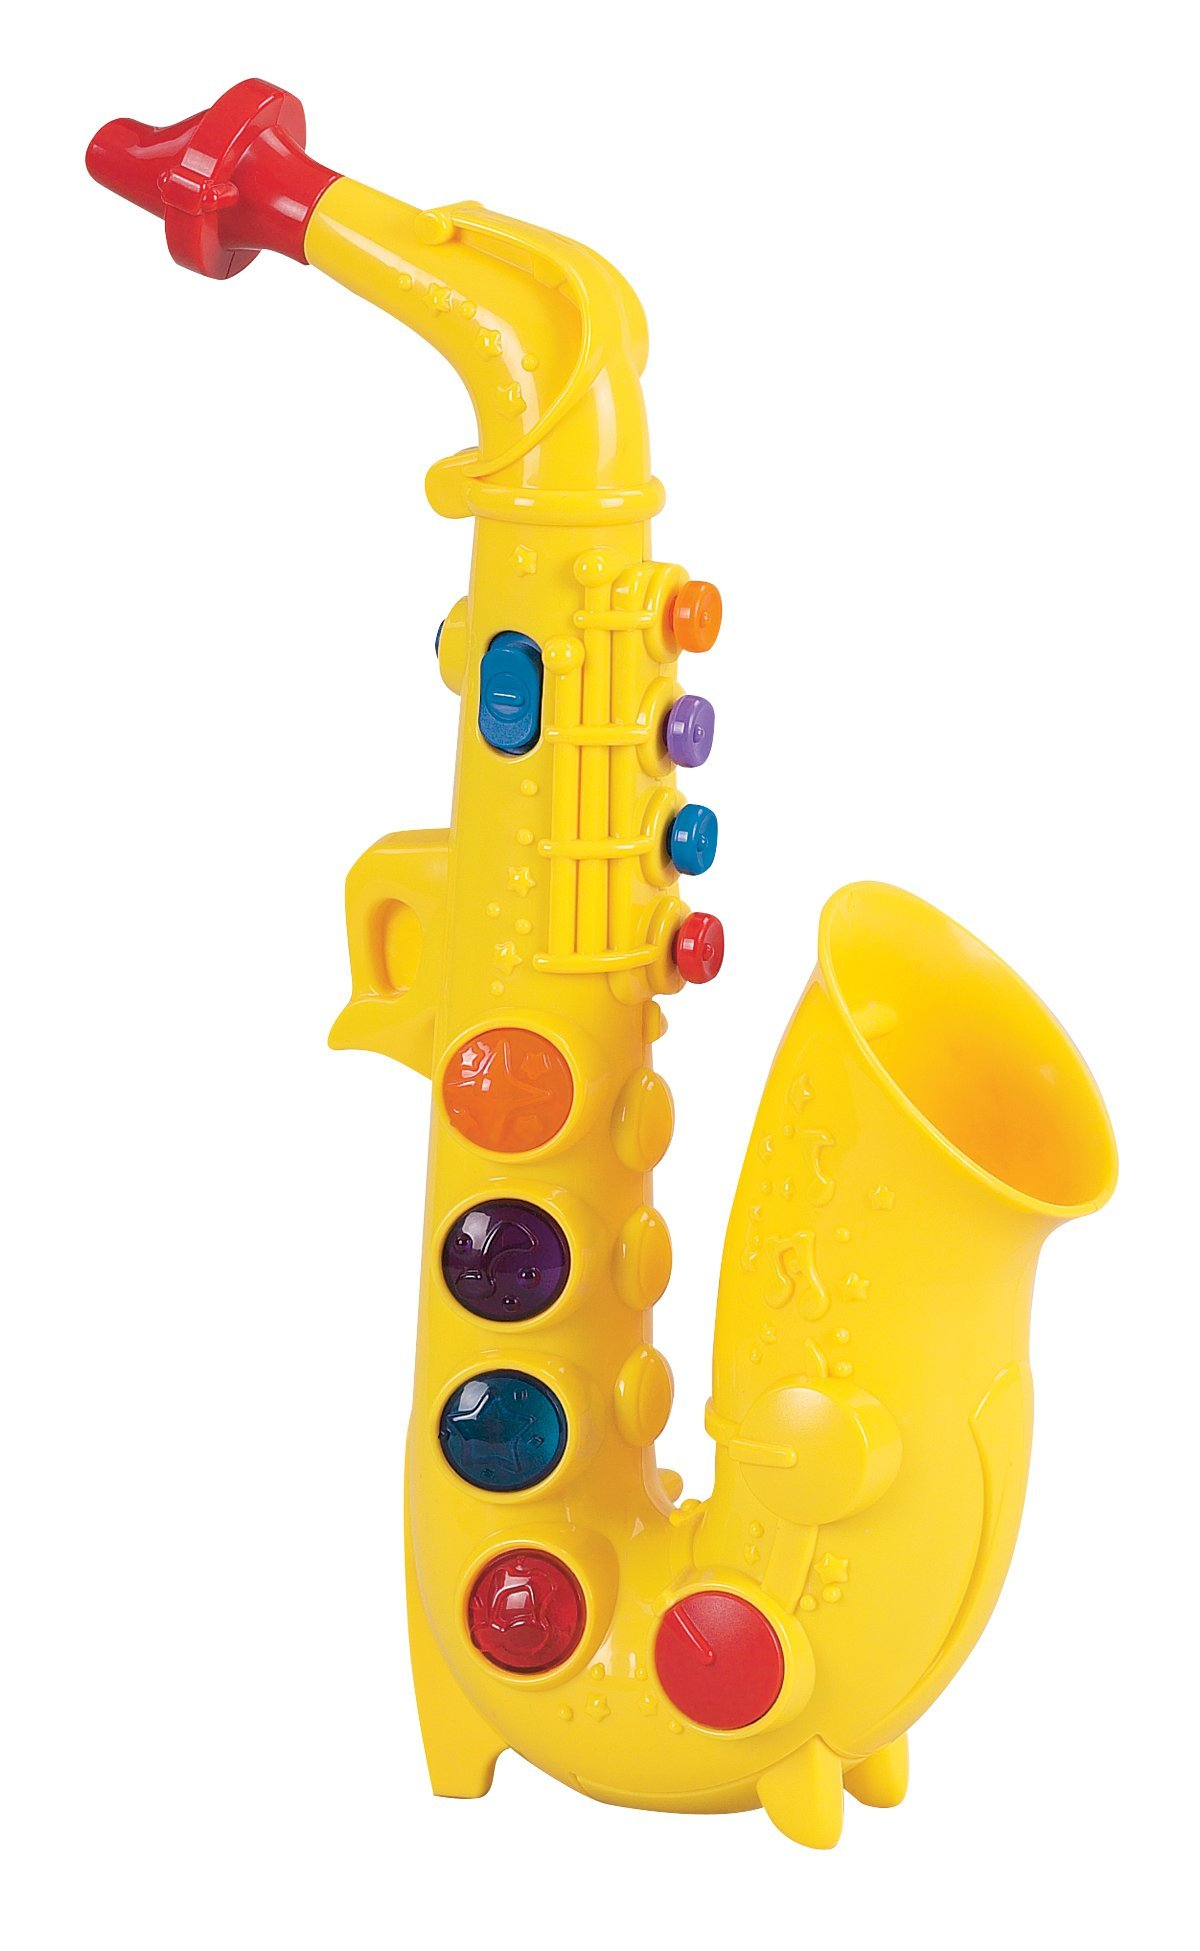 Small World Toys Preschool -Play At Home Saxophone B/O by Small World Toys (Image #1)